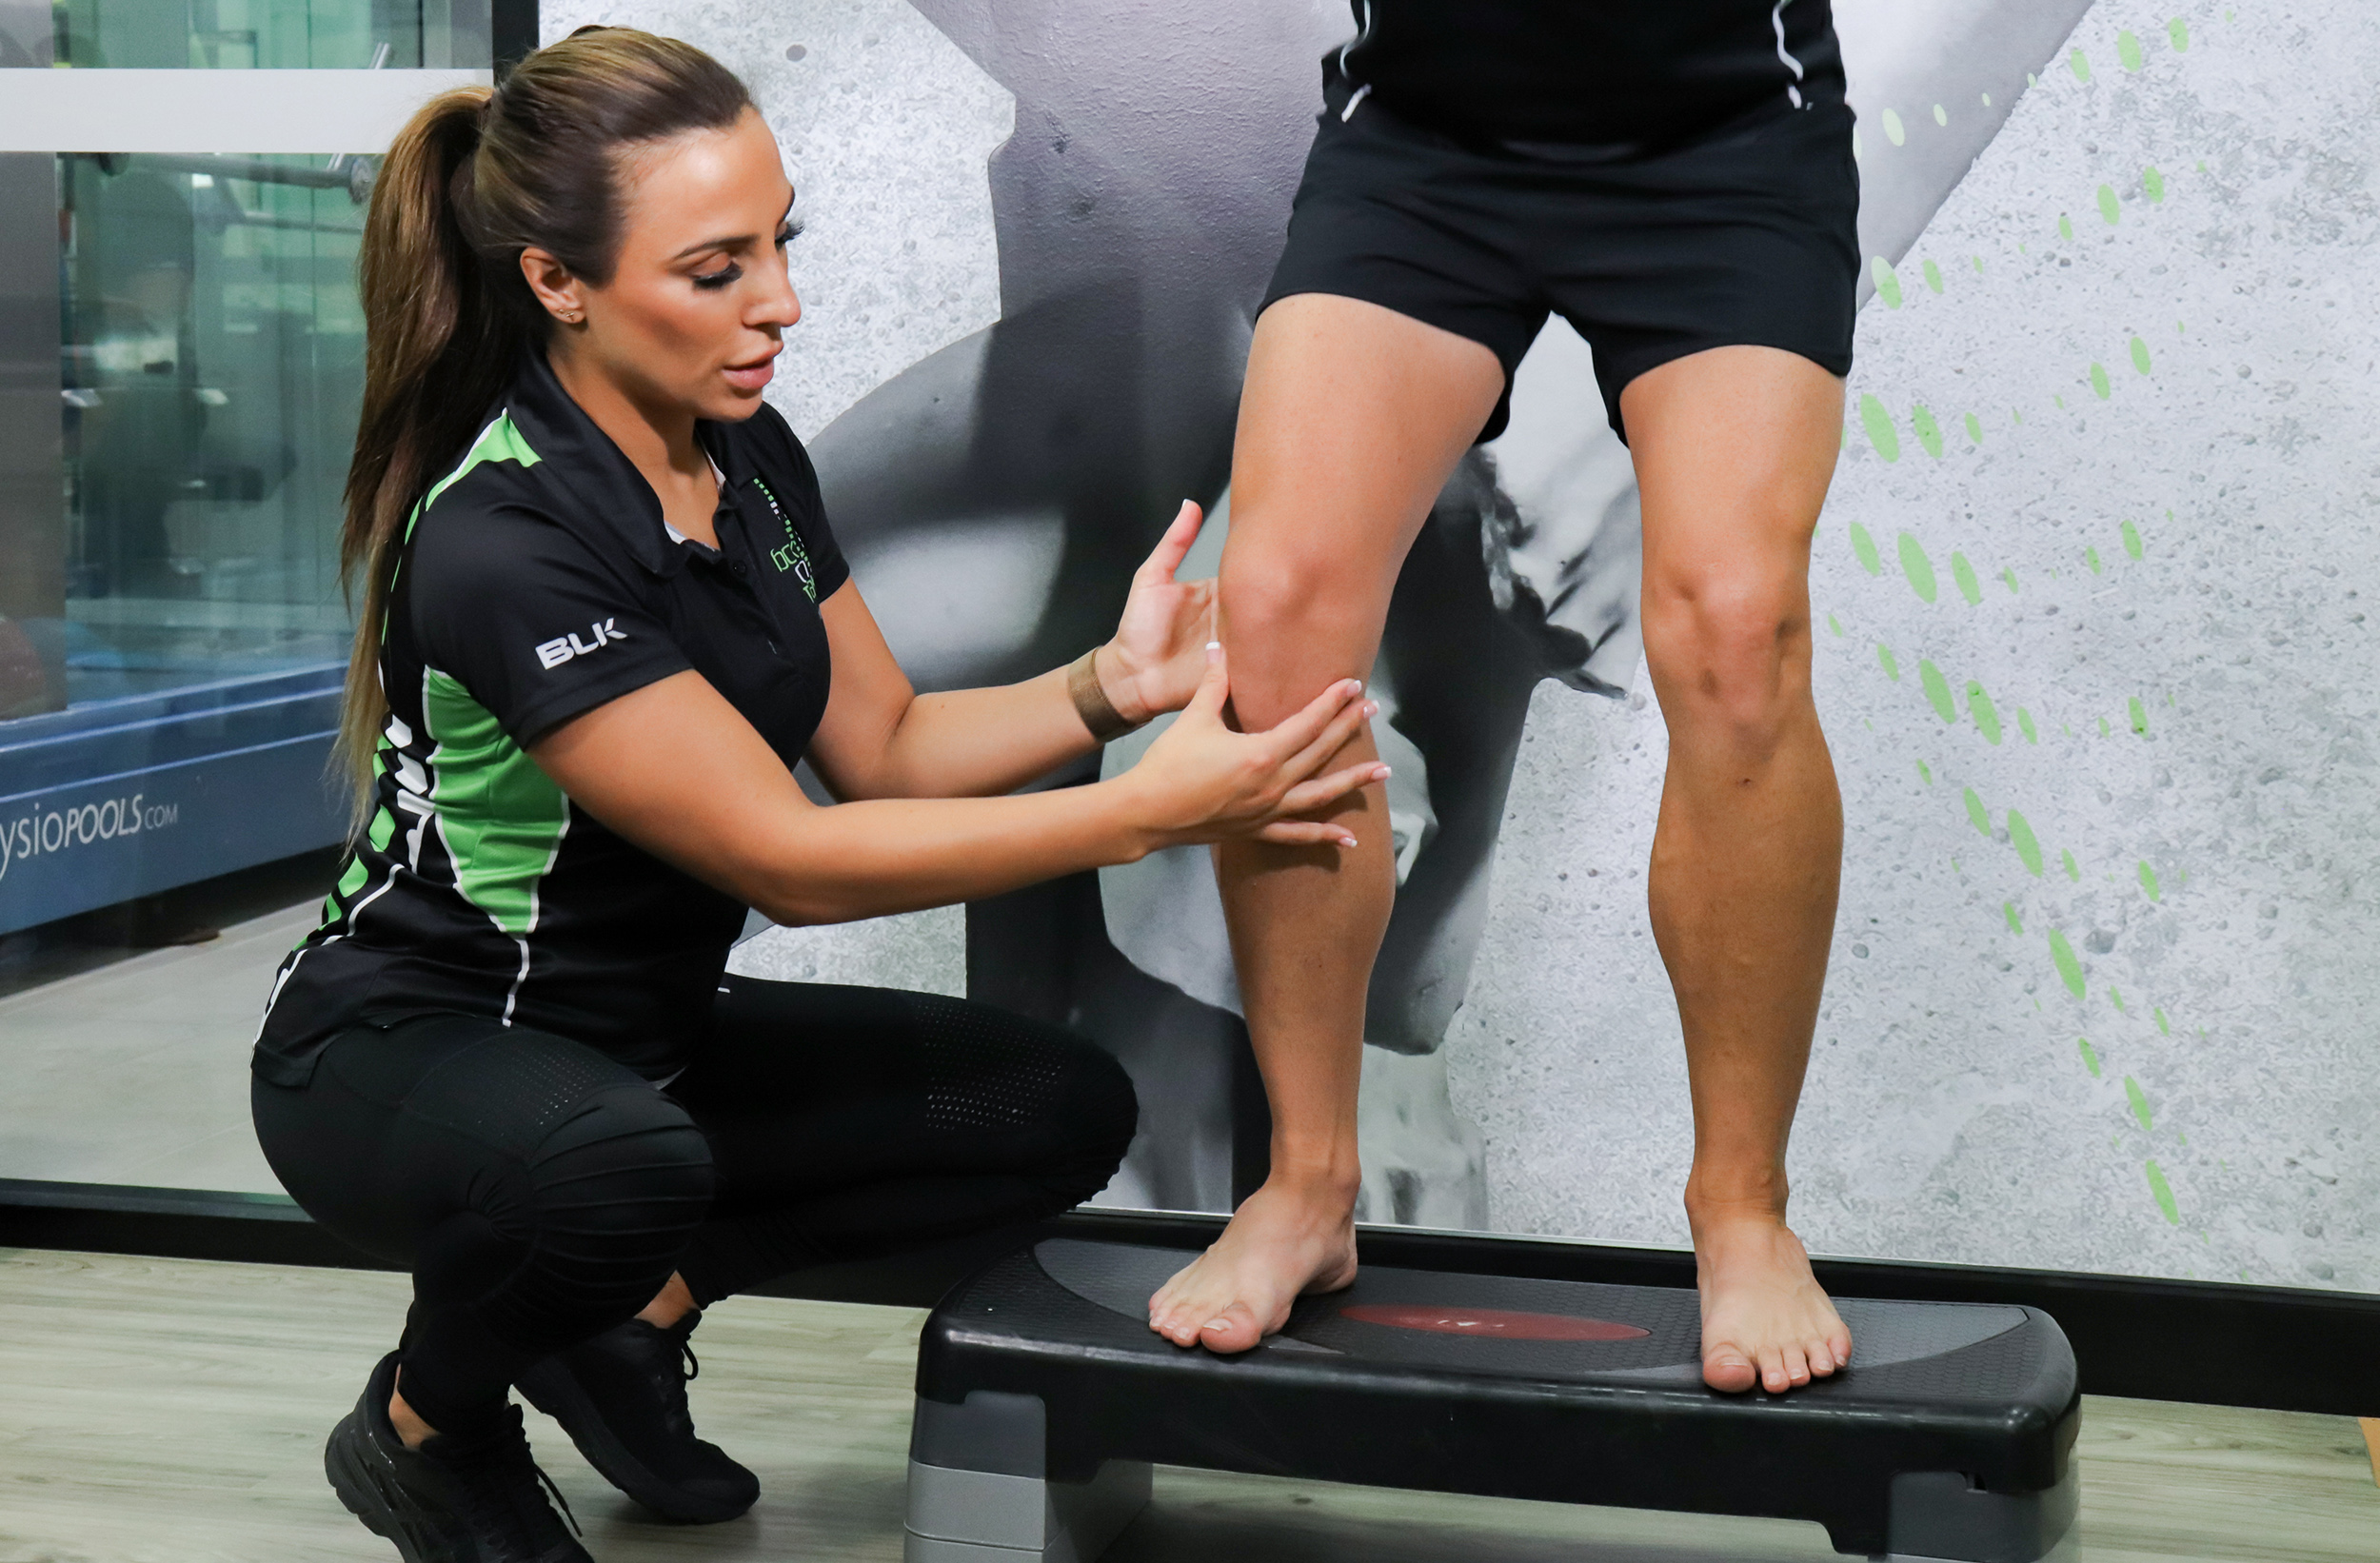 Western Sydney Physiotherapy